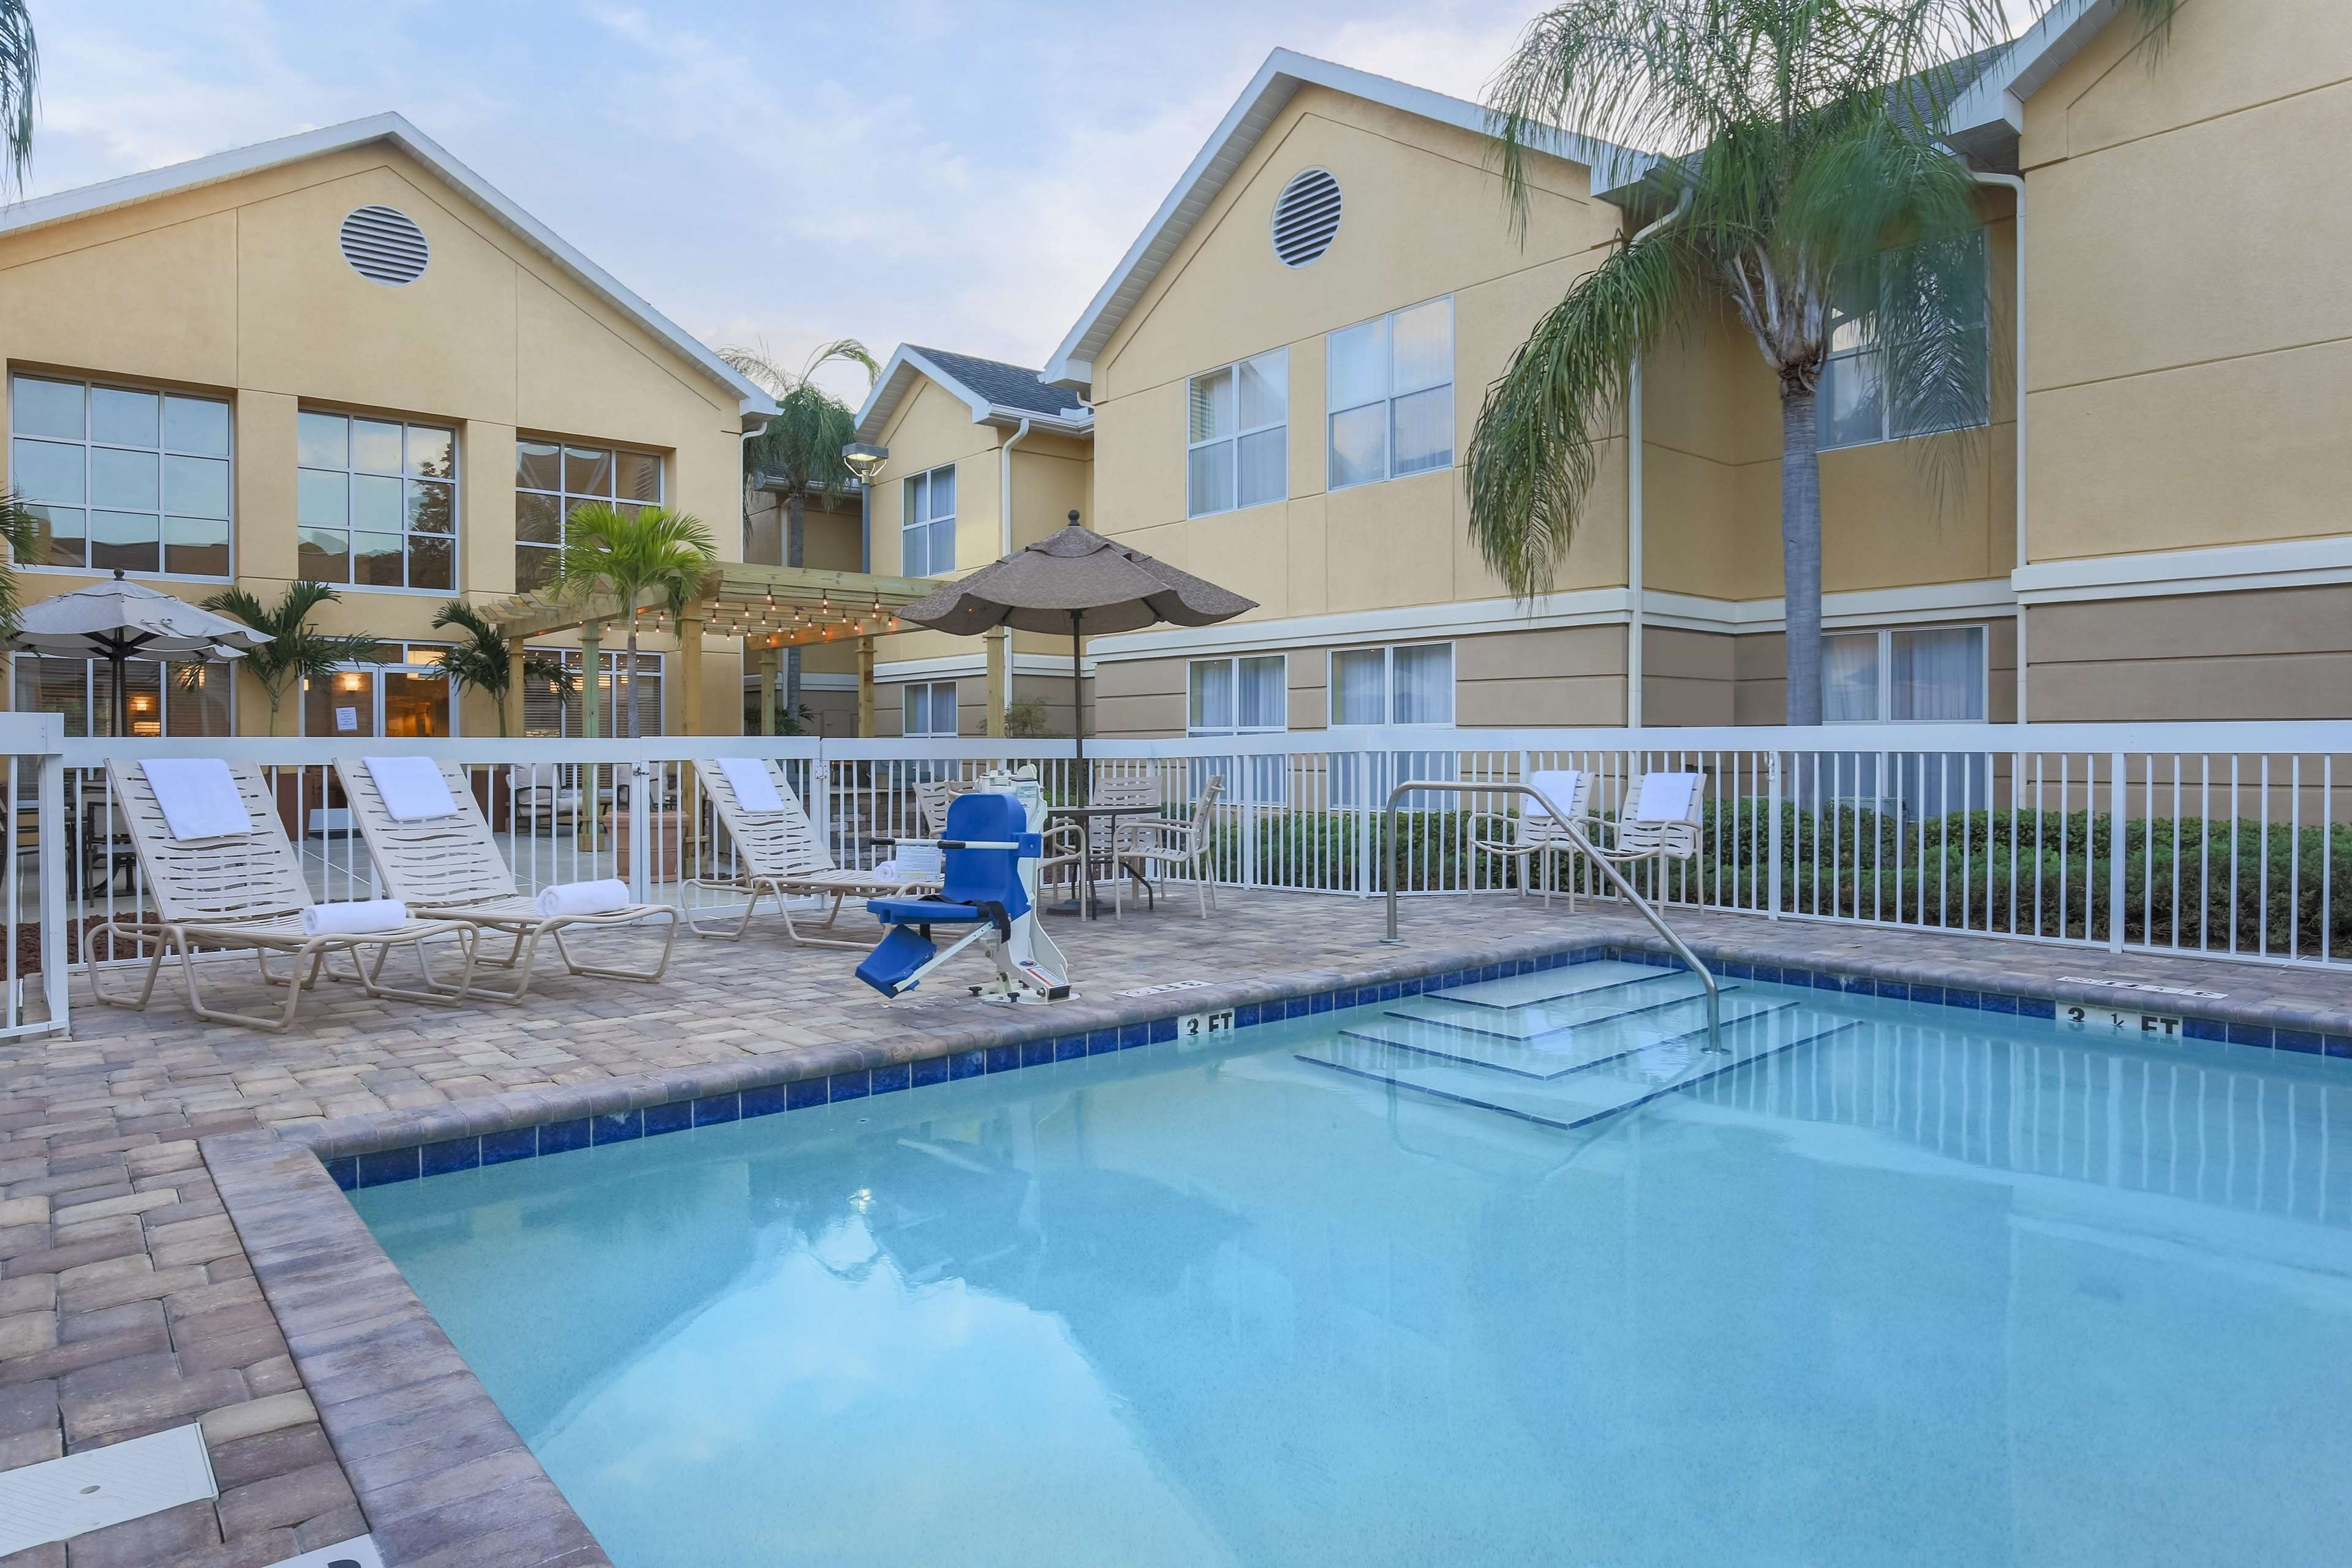 Homewood Suites by Hilton St. Petersburg Clearwater image 18